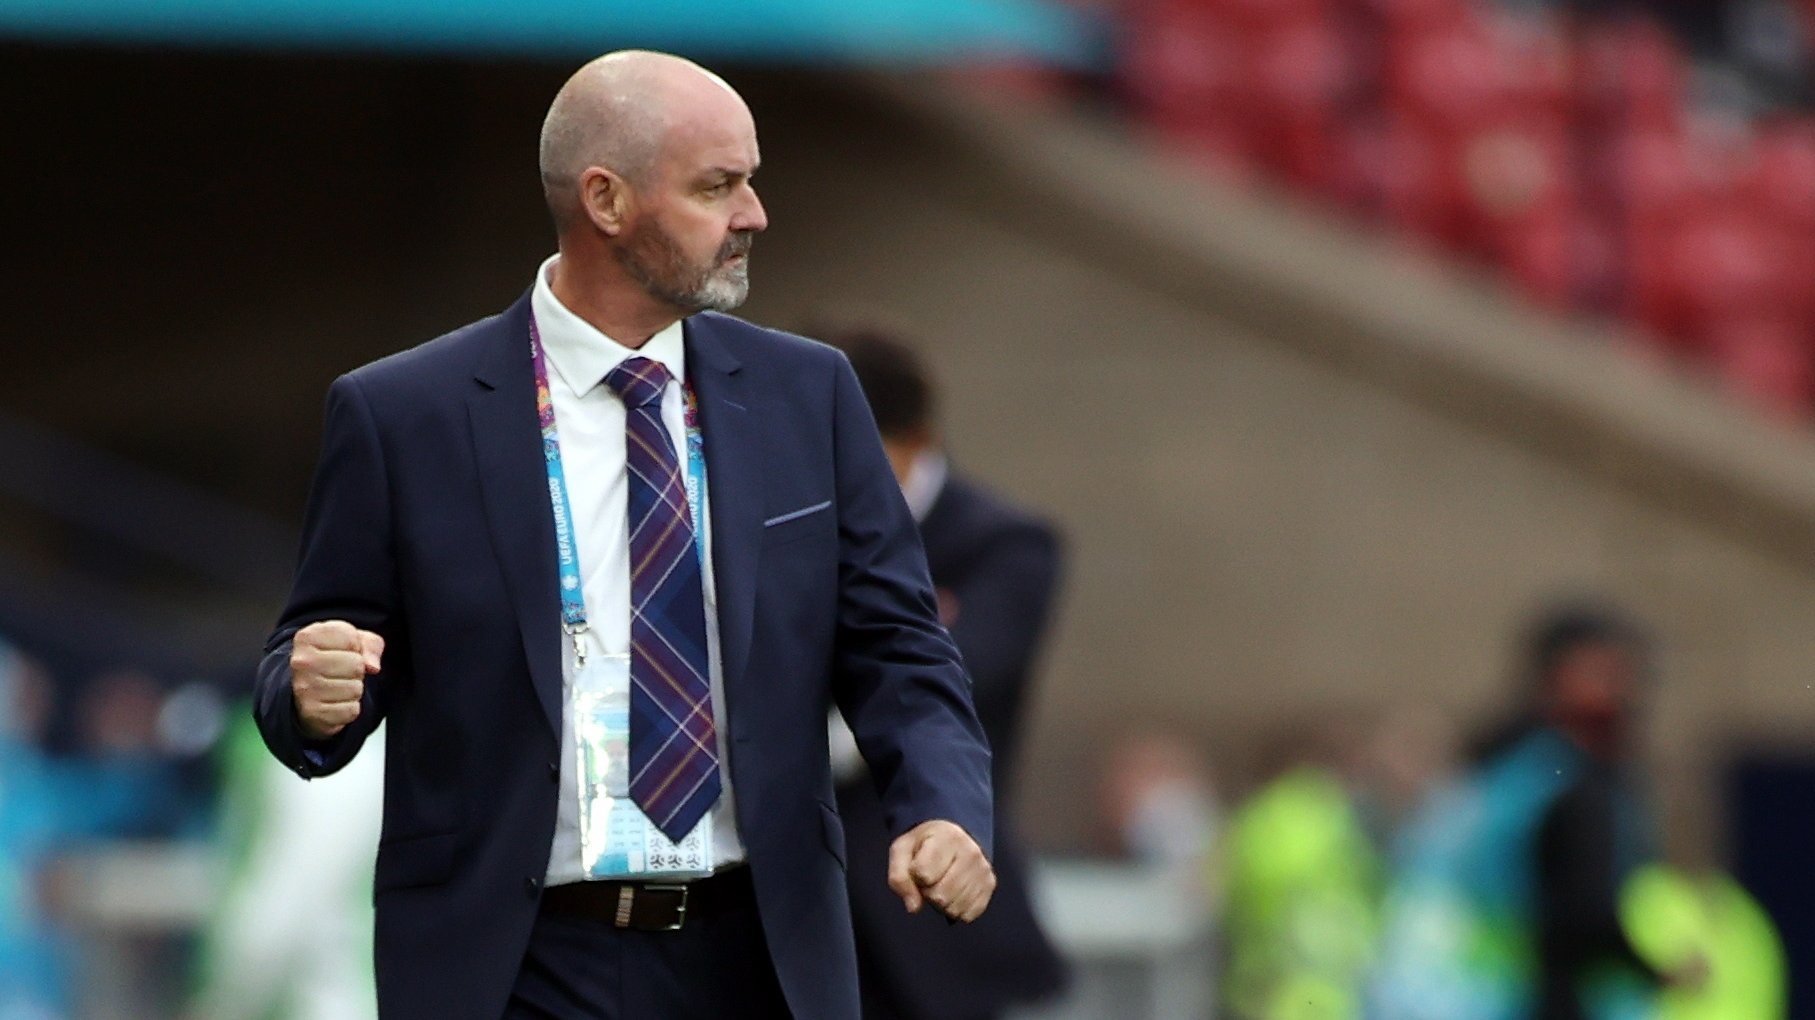 epa09294232 Scotland manager Steve Clarke reacts during the UEFA EURO 2020 group D preliminary round soccer match between Croatia and Scotland in Glasgow, Britain, 22 June 2021.  EPA/Lee Smith / POOL (RESTRICTIONS: For editorial news reporting purposes only. Images must appear as still images and must not emulate match action video footage. Photographs published in online publications shall have an interval of at least 20 seconds between the posting.)